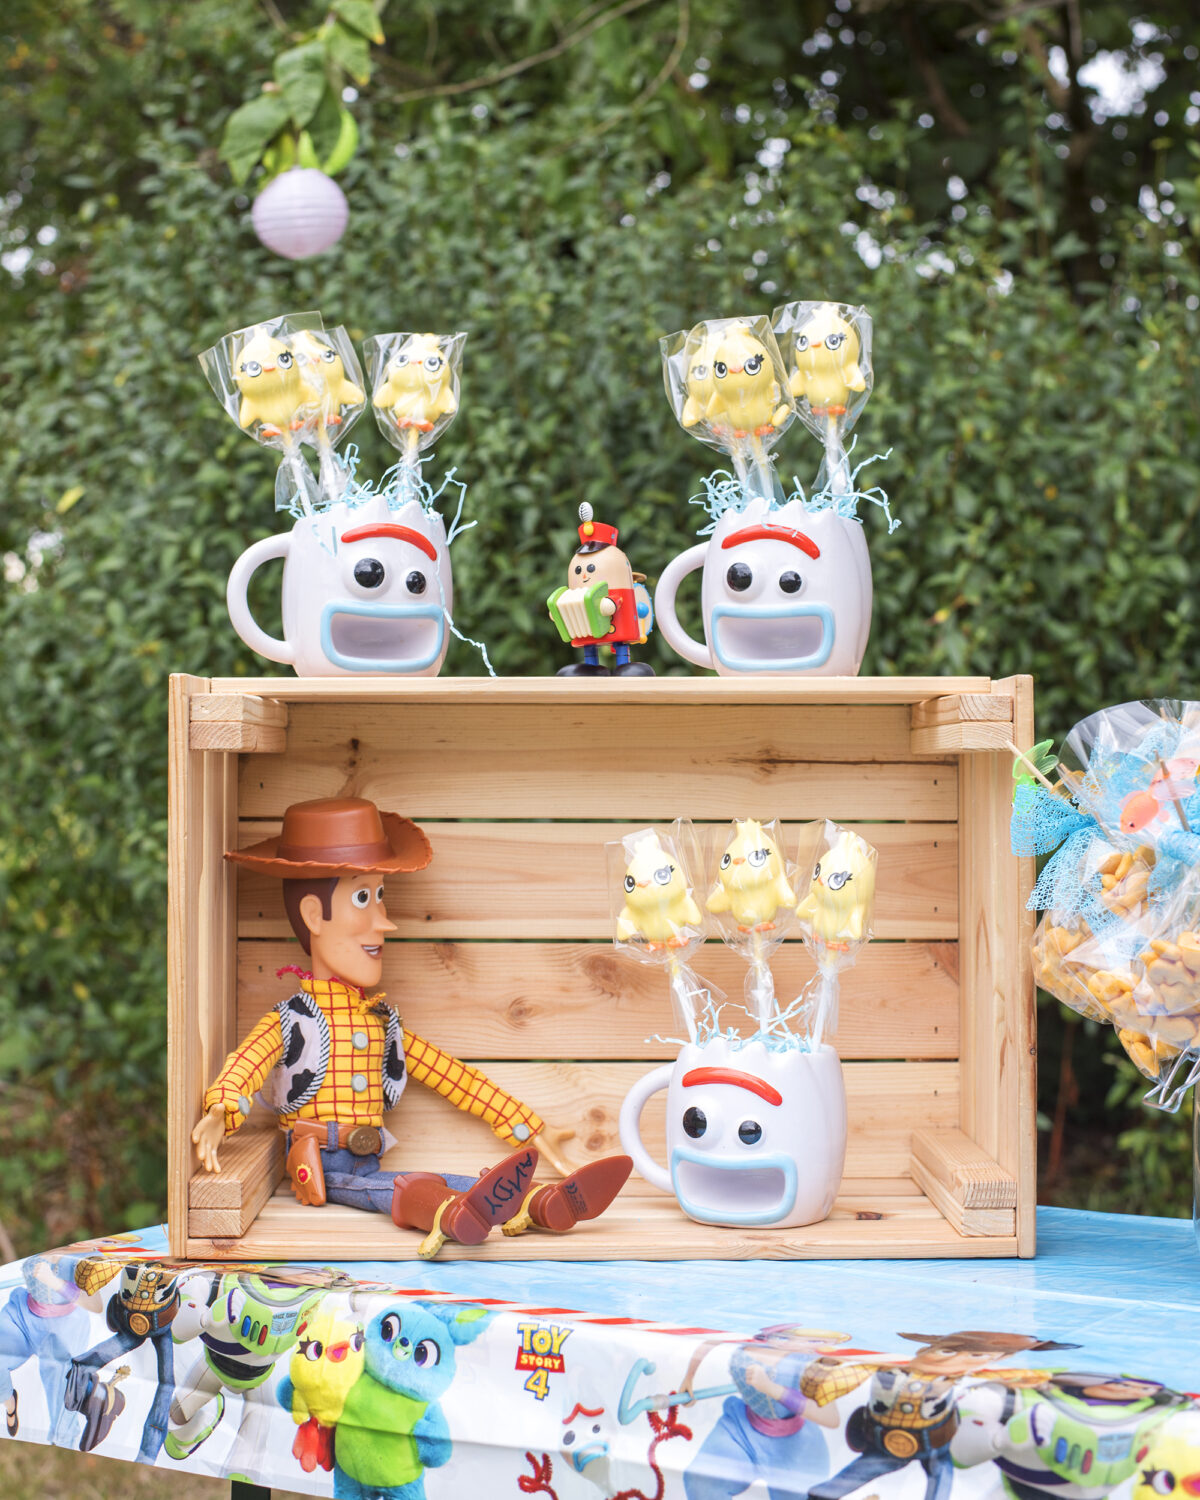 Image shows a party table with an upturned wooden ikea crate. Inside the crate sits a toy of Woody the Cowboy from Disney's Toy Story, and on top are three Forky shaped mugs filled with Ducky shaped cake pops. The original toy story pixar tinker toy is on top of the crate.